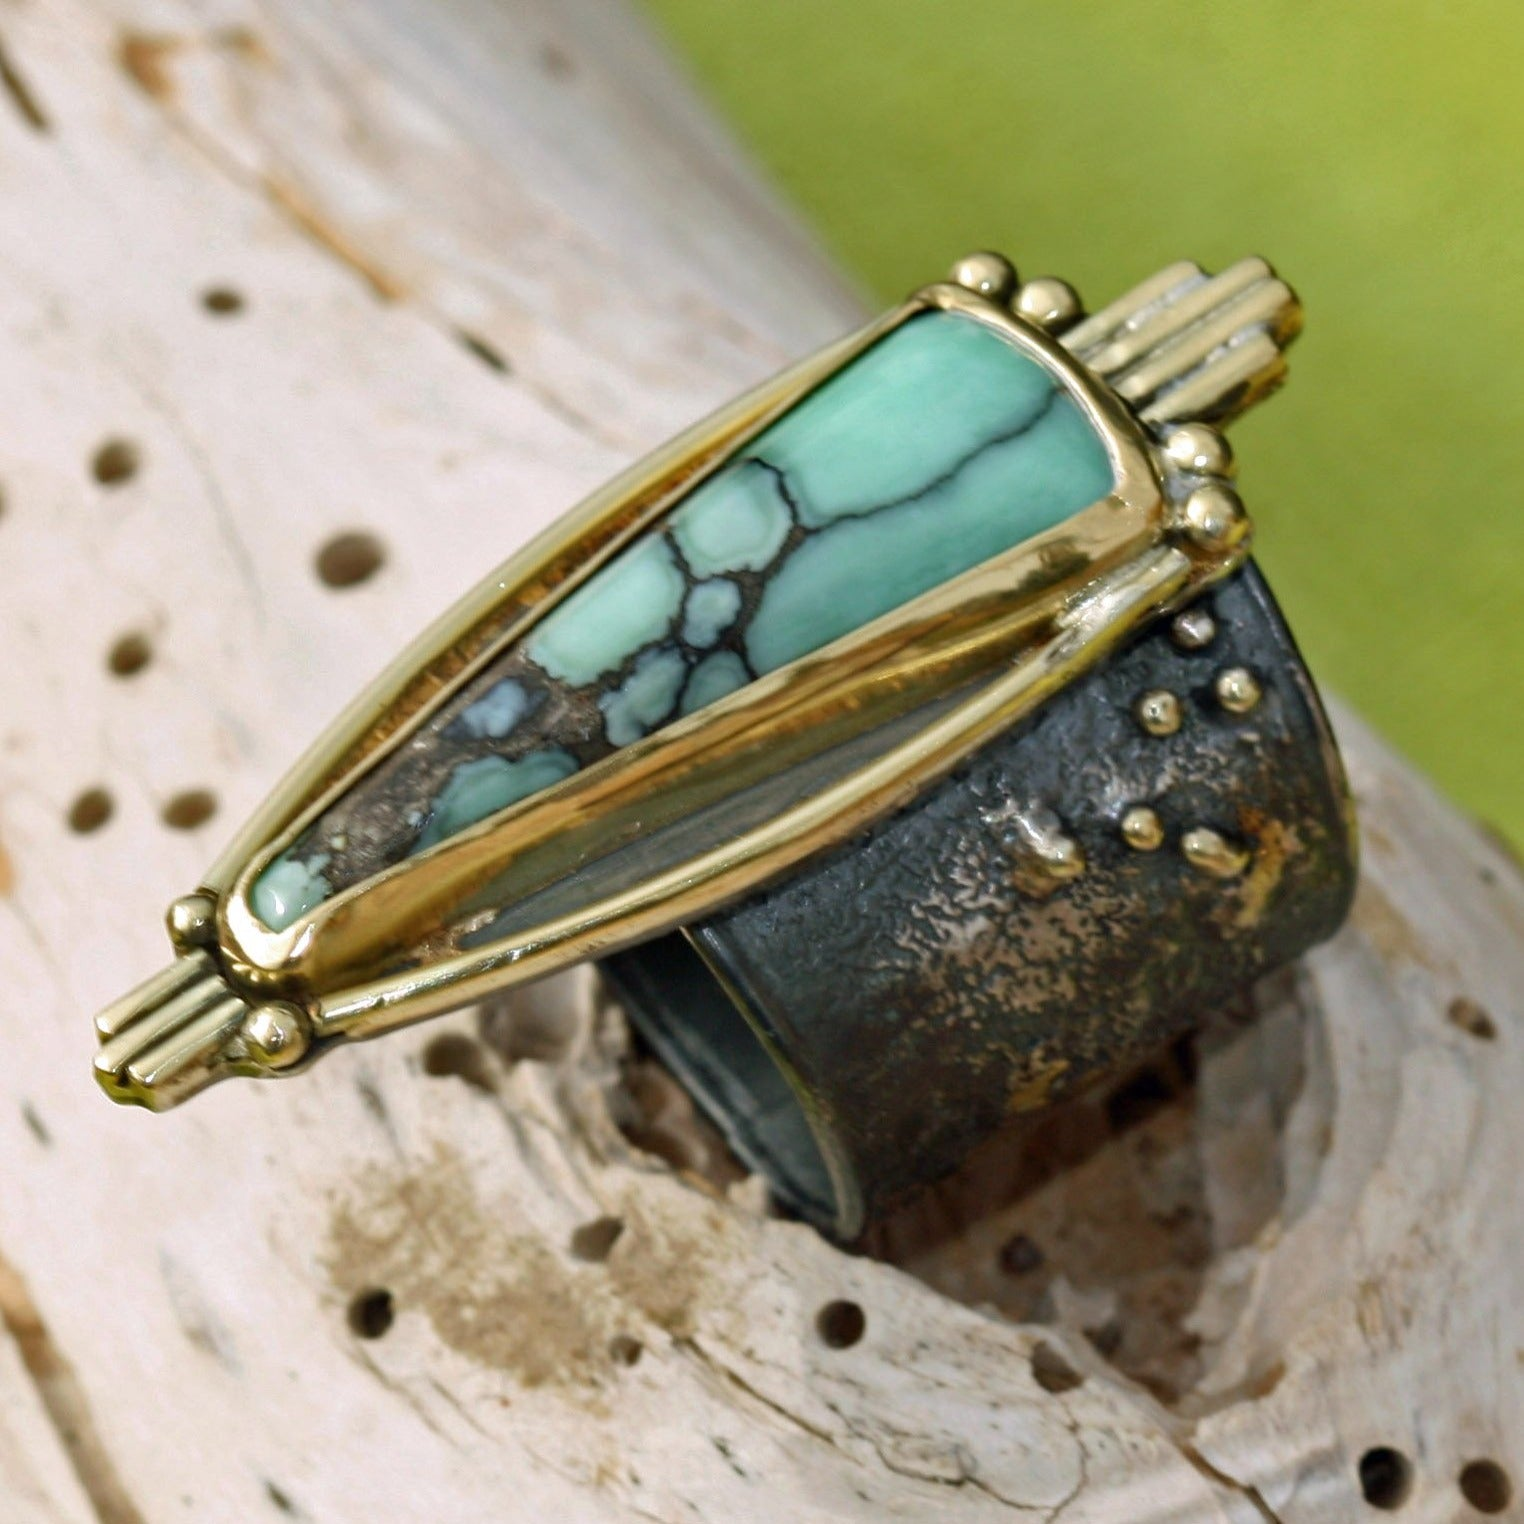 Nevada Variscite Ring - 18K Gold and Oxidized Sterling Silver  - Size 7 1/4